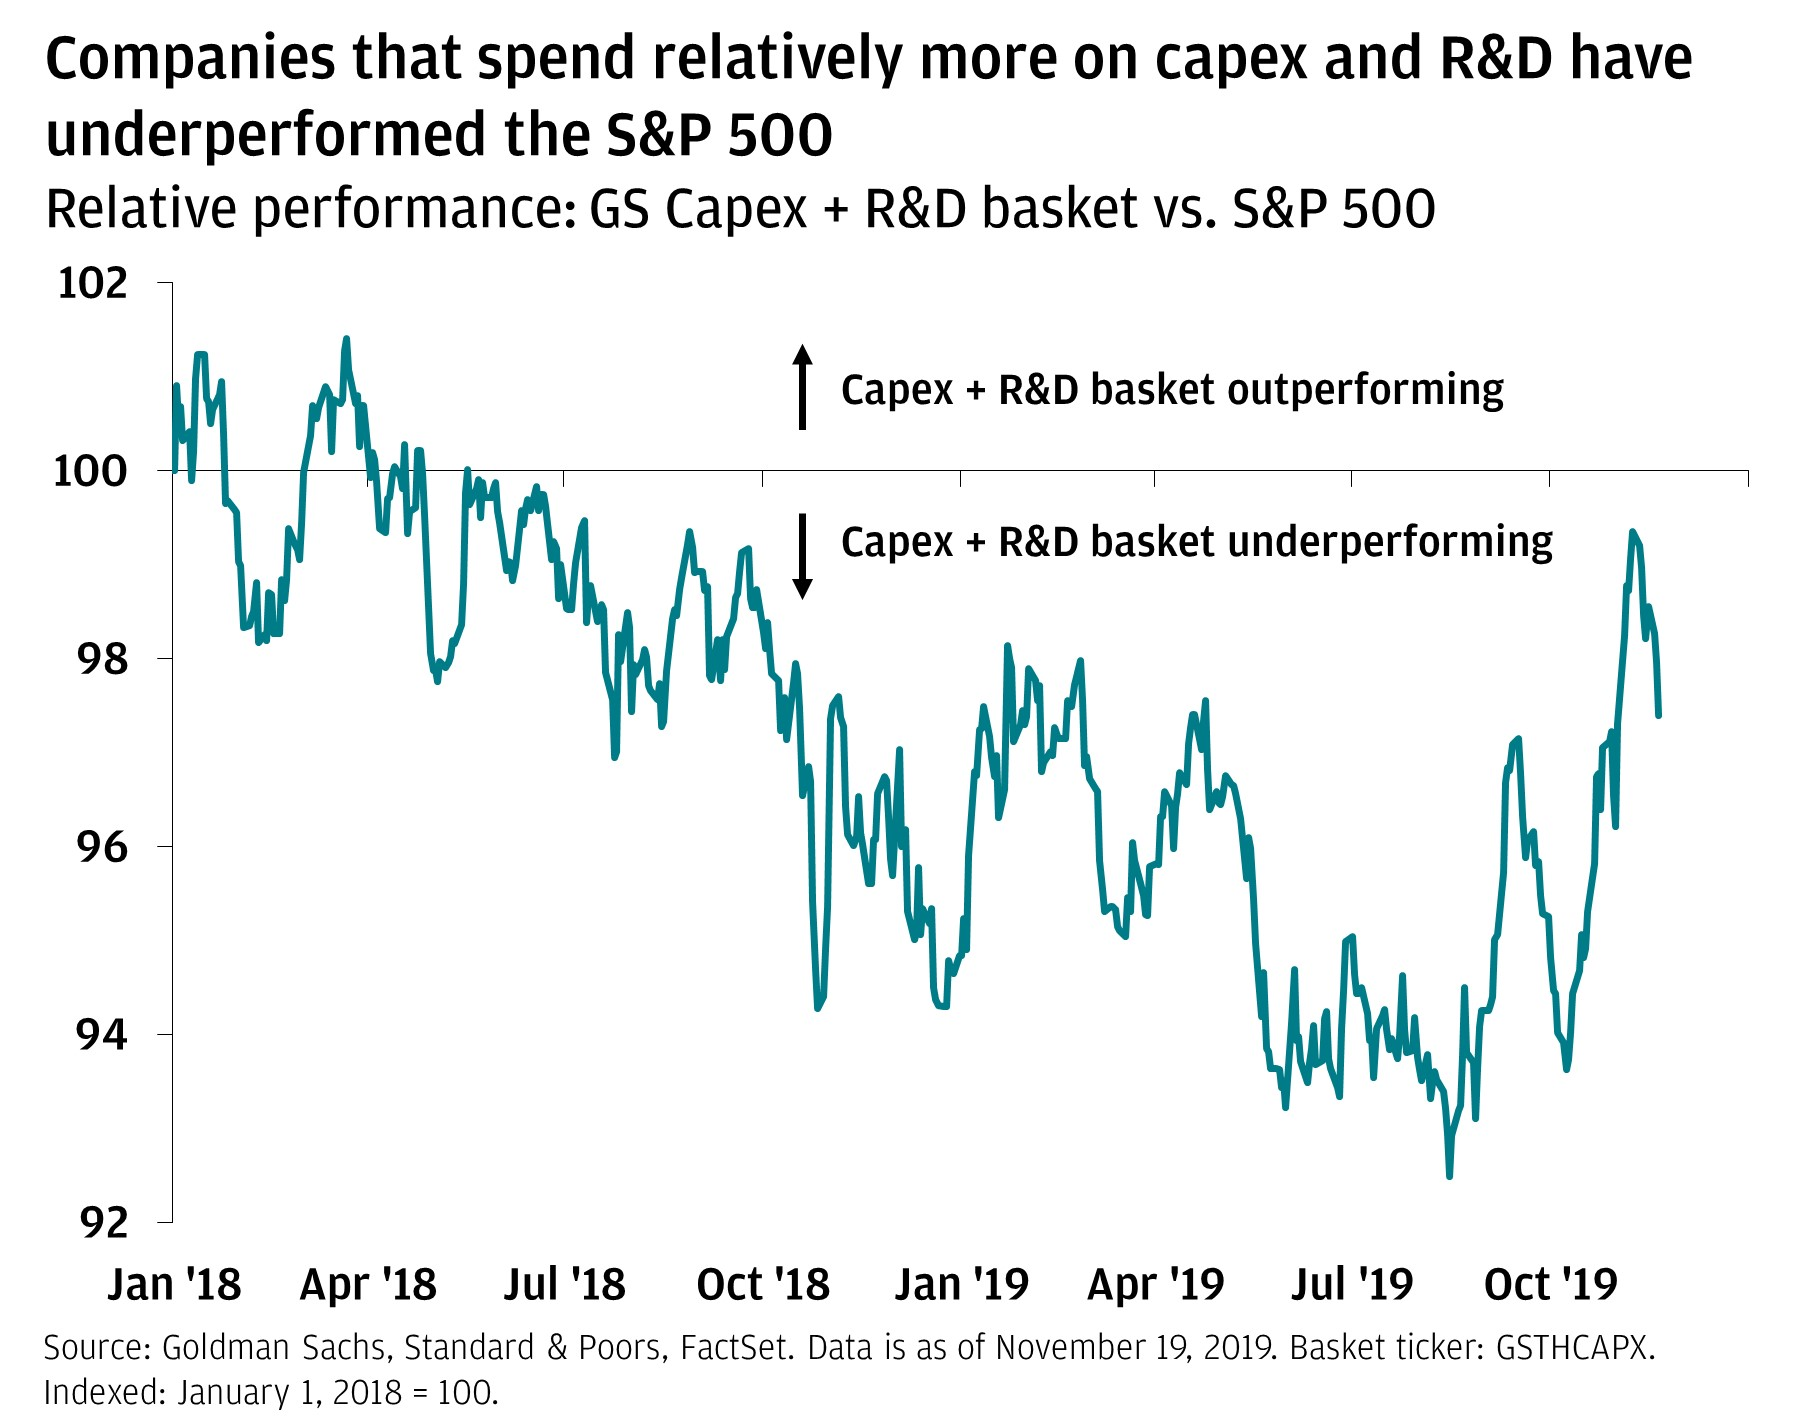 The line graph shows the Goldman Sachs Capex and the Research and Development basket in comparison to the S&P 500 from January 2018 through November 19, 2019. It is indexed to show the level on January 1, 2018, at 100. If it is above 100, it shows the basket is outperforming. The graph shows that since October 2019, this ratio has been increasing, but still remains below 100.